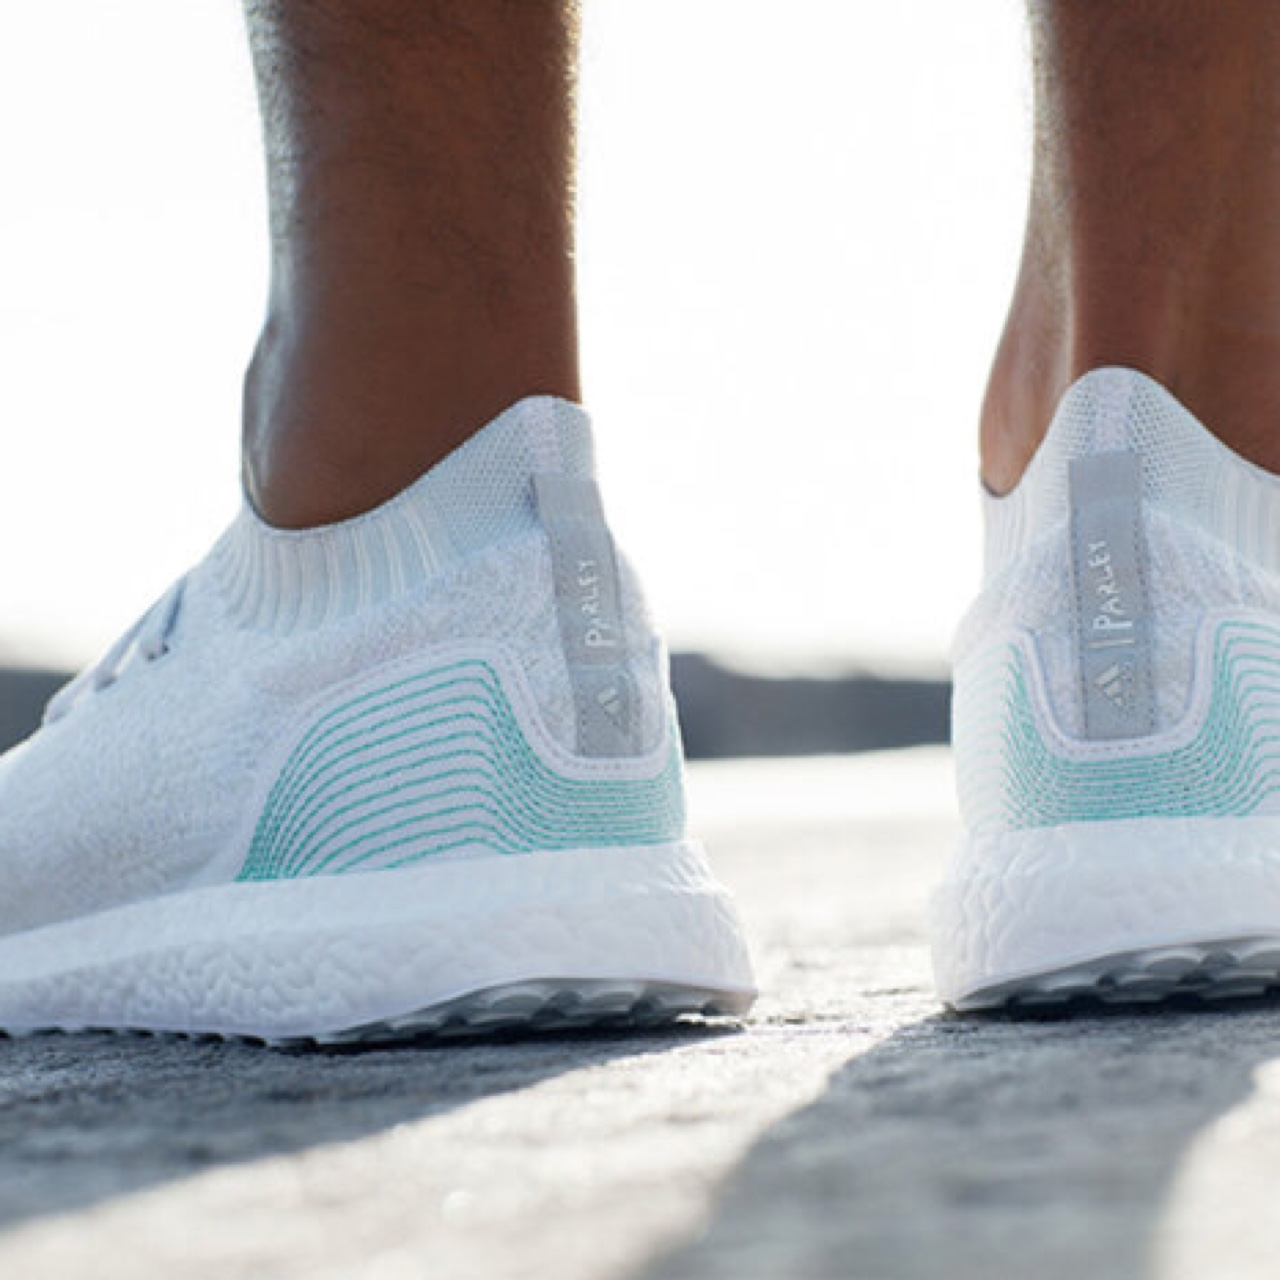 competitive price d4ca5 5d63e Adidas Ultraboost x Parley ... US 8.5 ... New in Box...